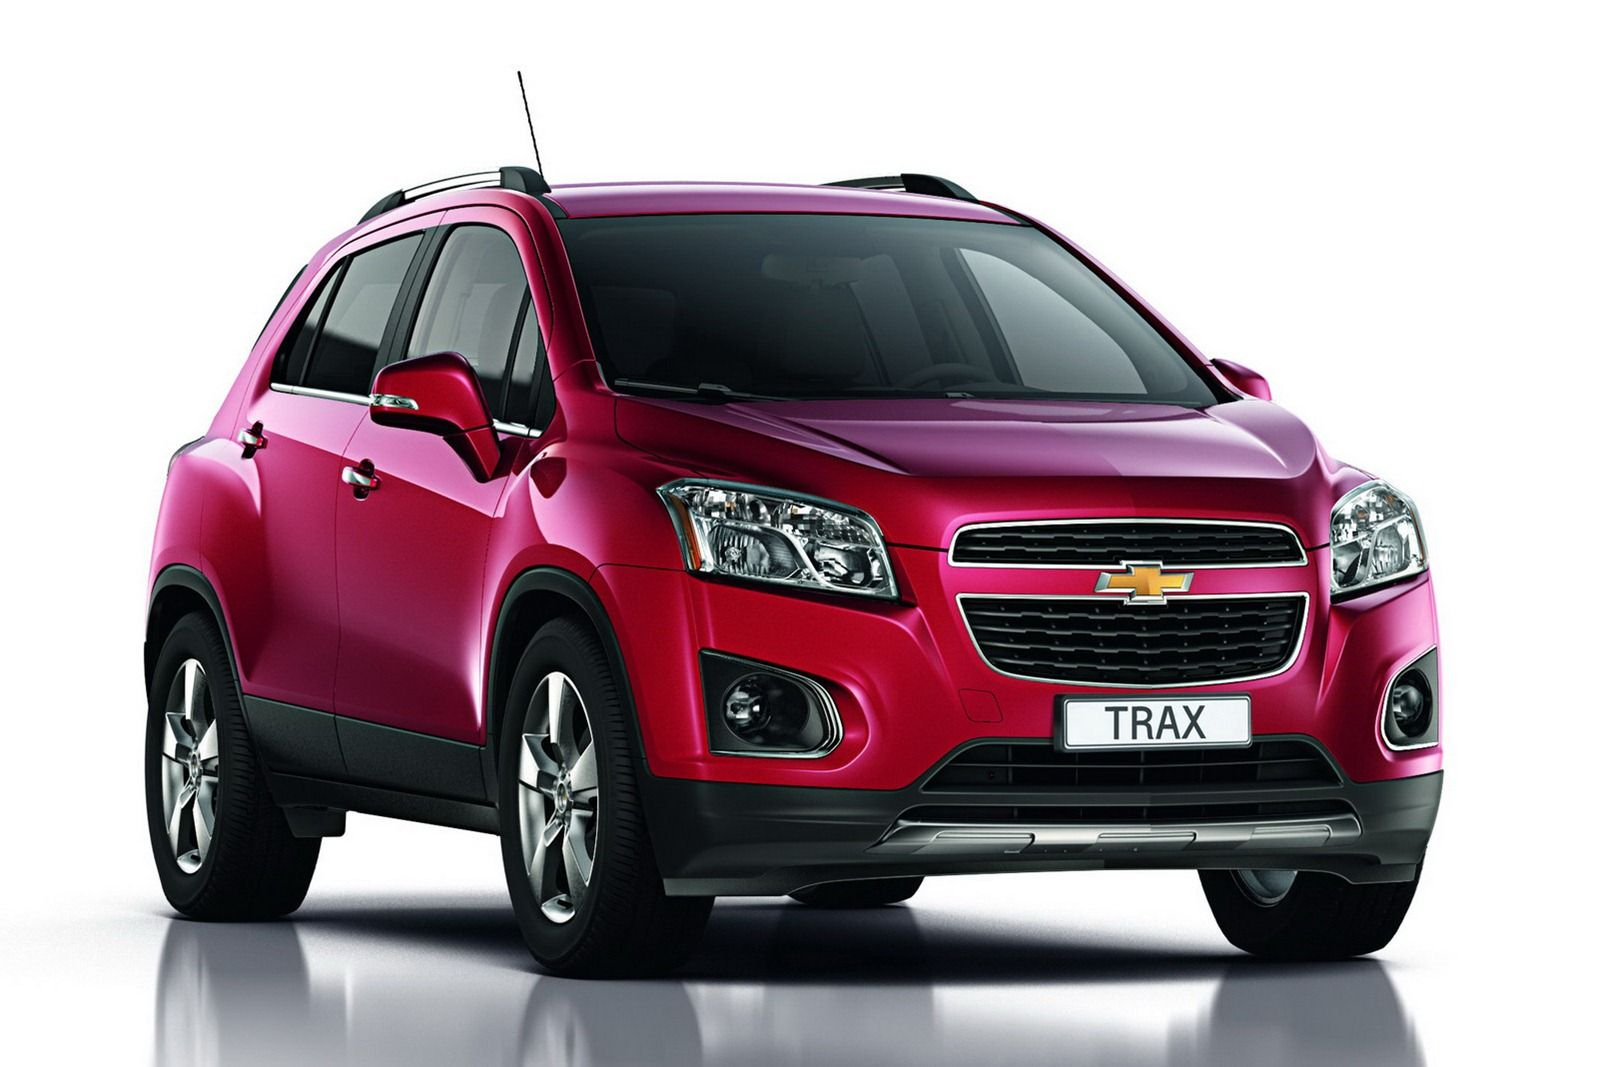 new car launches september 20132012 Paris Motor Show Preview 2013 Chevrolet Trax  Chevy Small